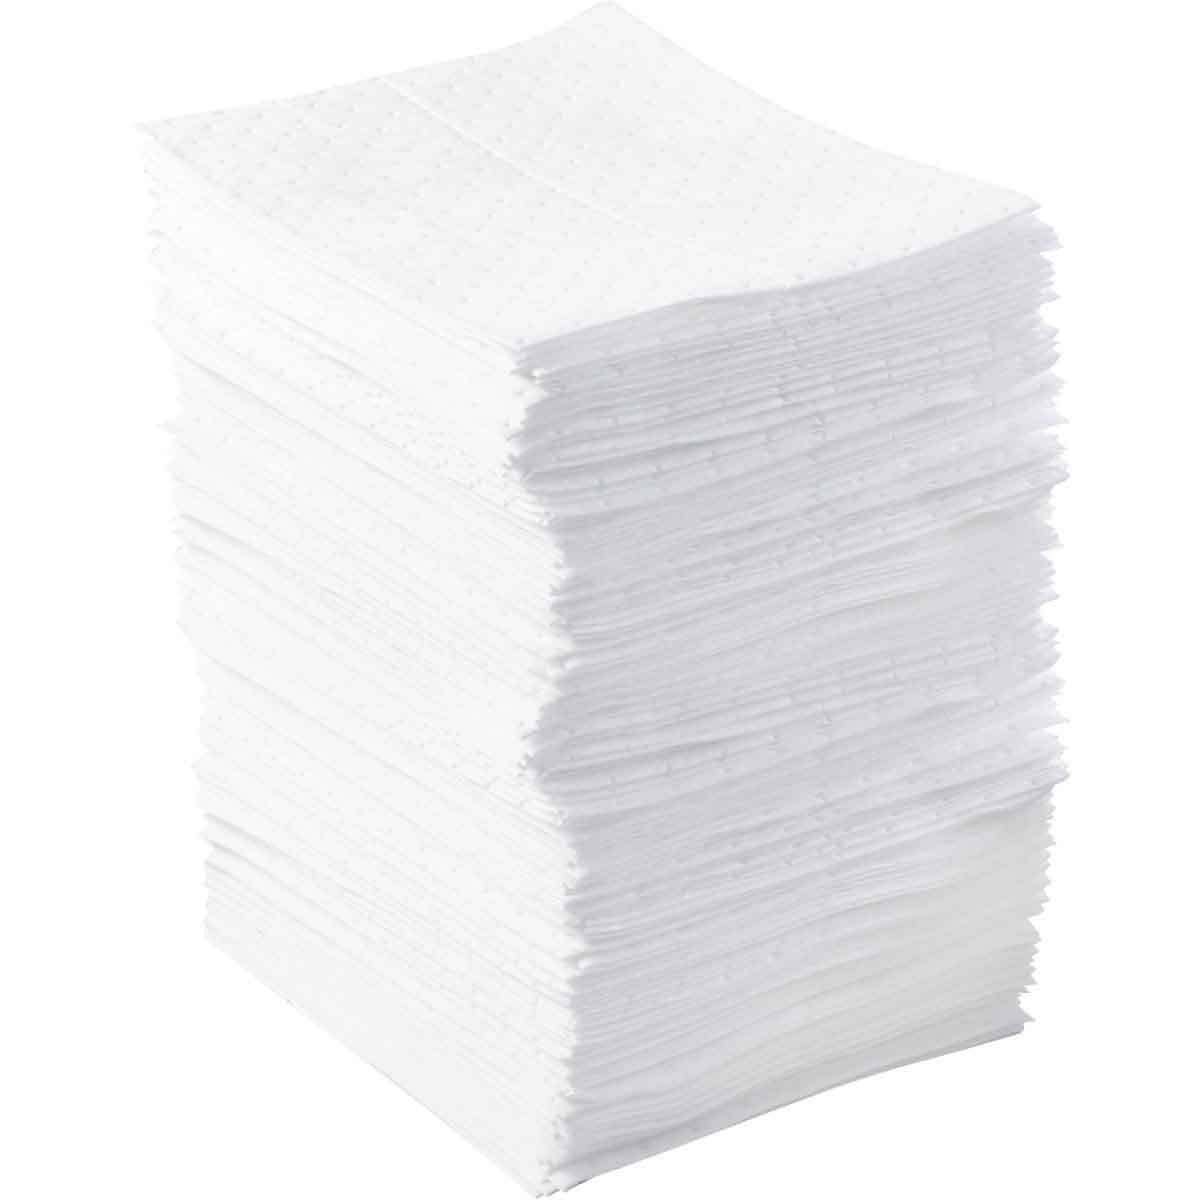 SPC® BASIC® BPO100 Heavyweight Perforated Absorbent Pad, 17 in L x 15 in W x 1 ply THK, 20.5 gal Absorption, Meltblown Polypropylene